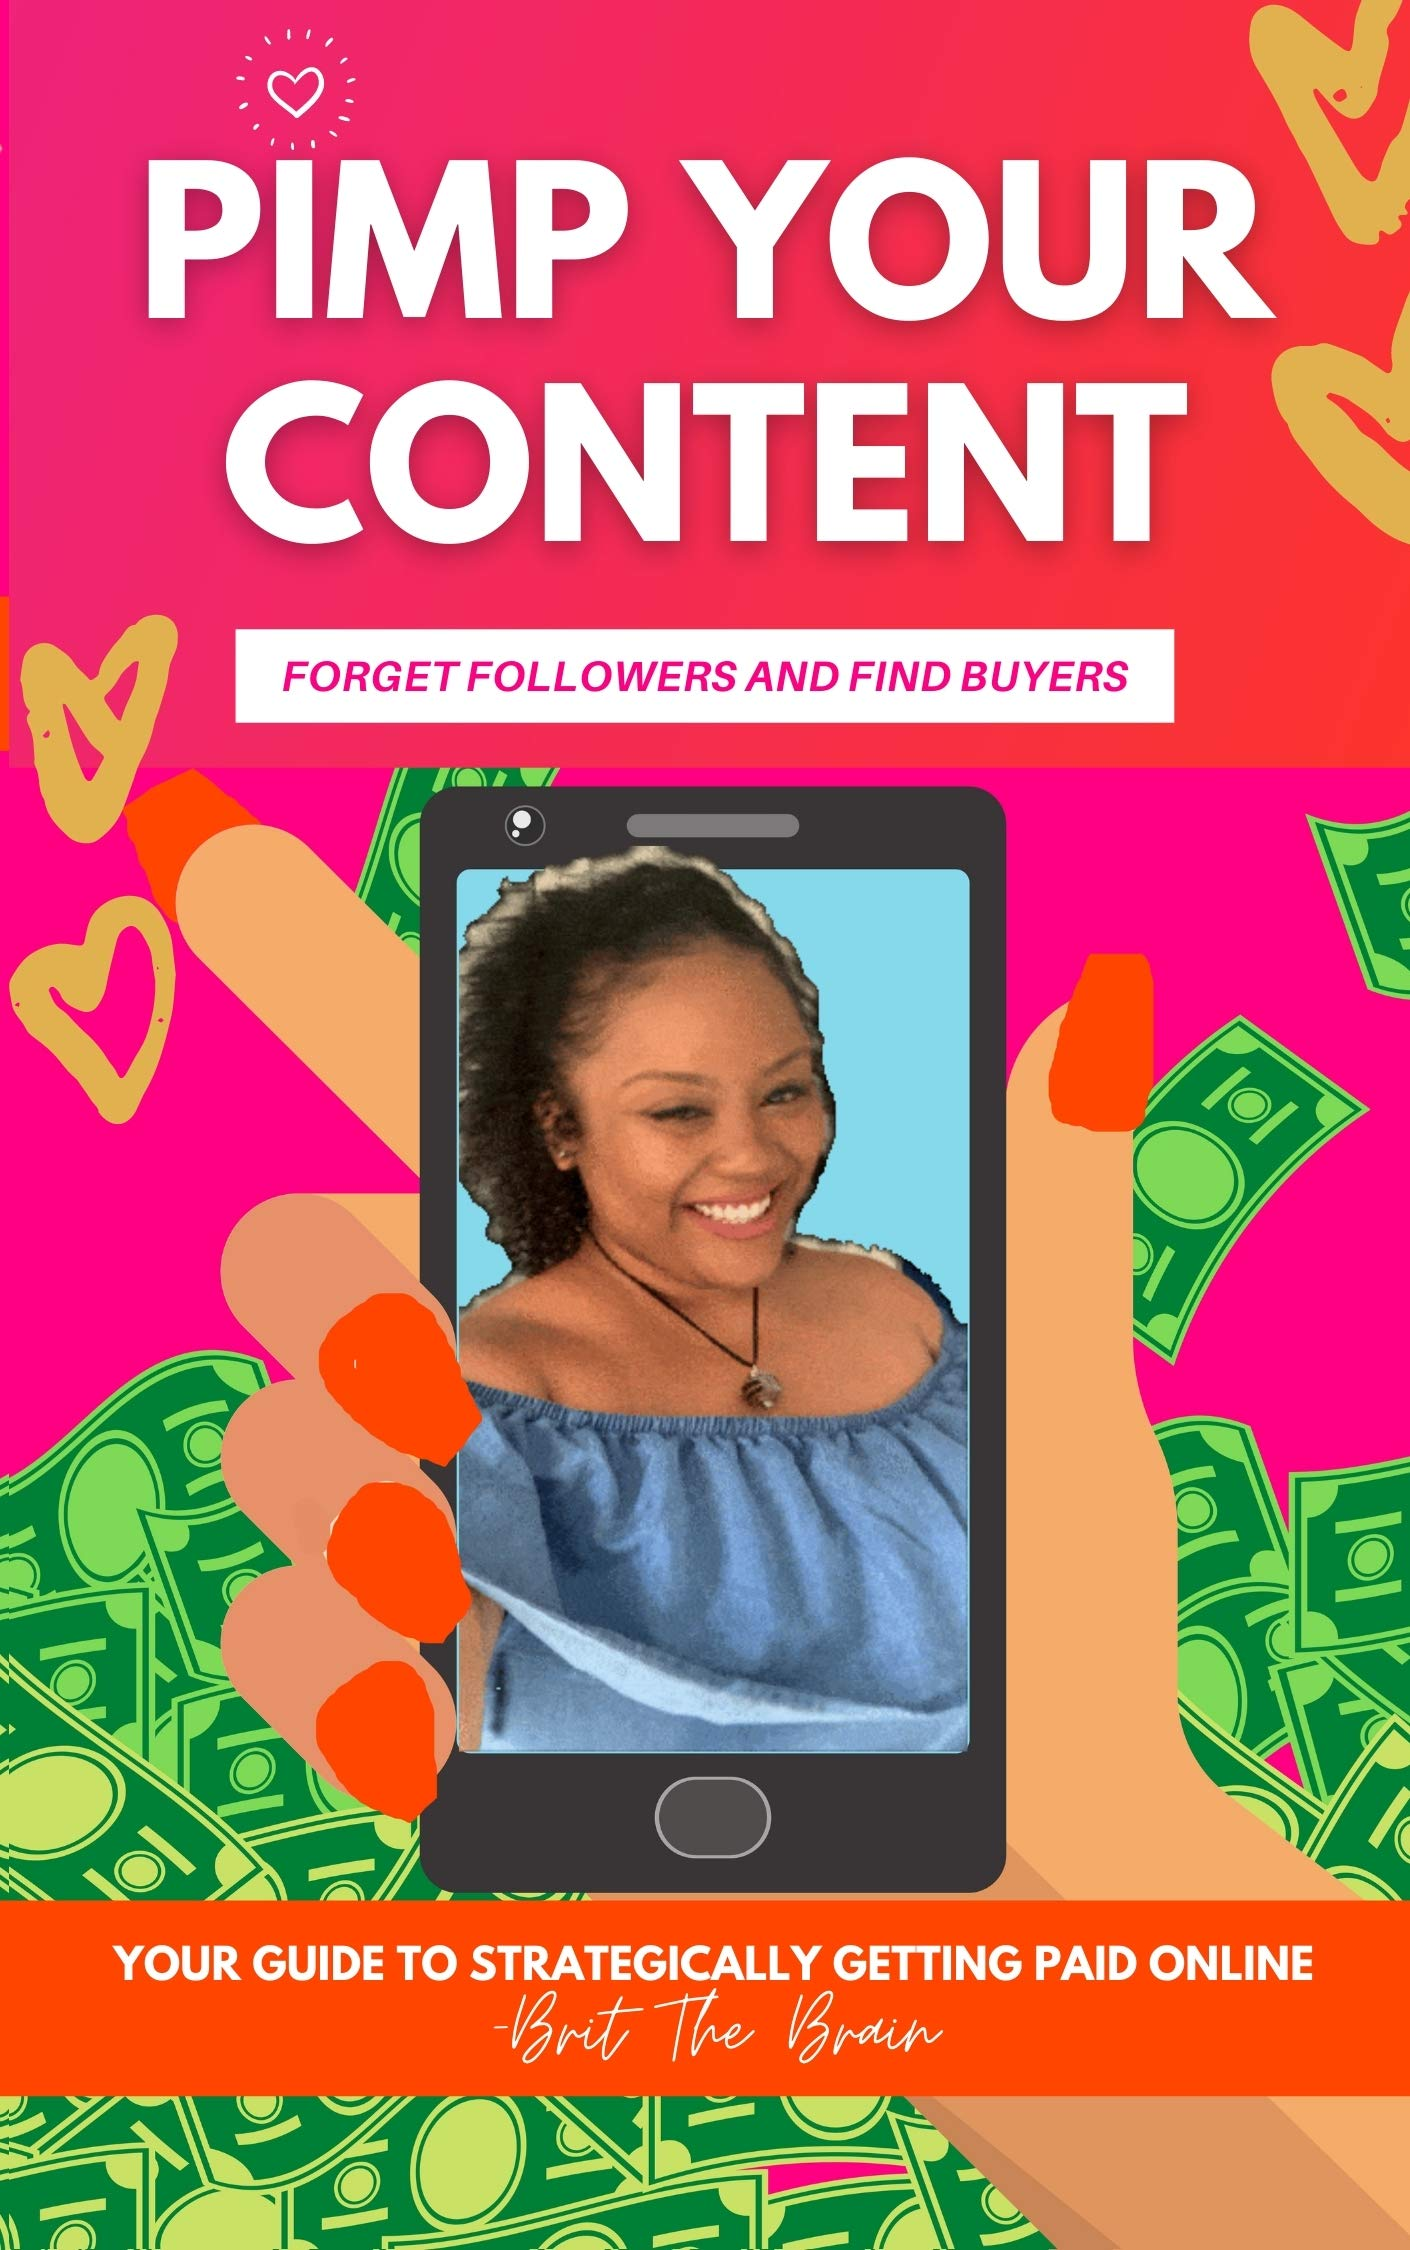 Pimp Your Content - Forget Followers and Find Buyers: Your Guide To Strategically Getting Paid Online (Brit The Brain - Pimp Your Book 1)